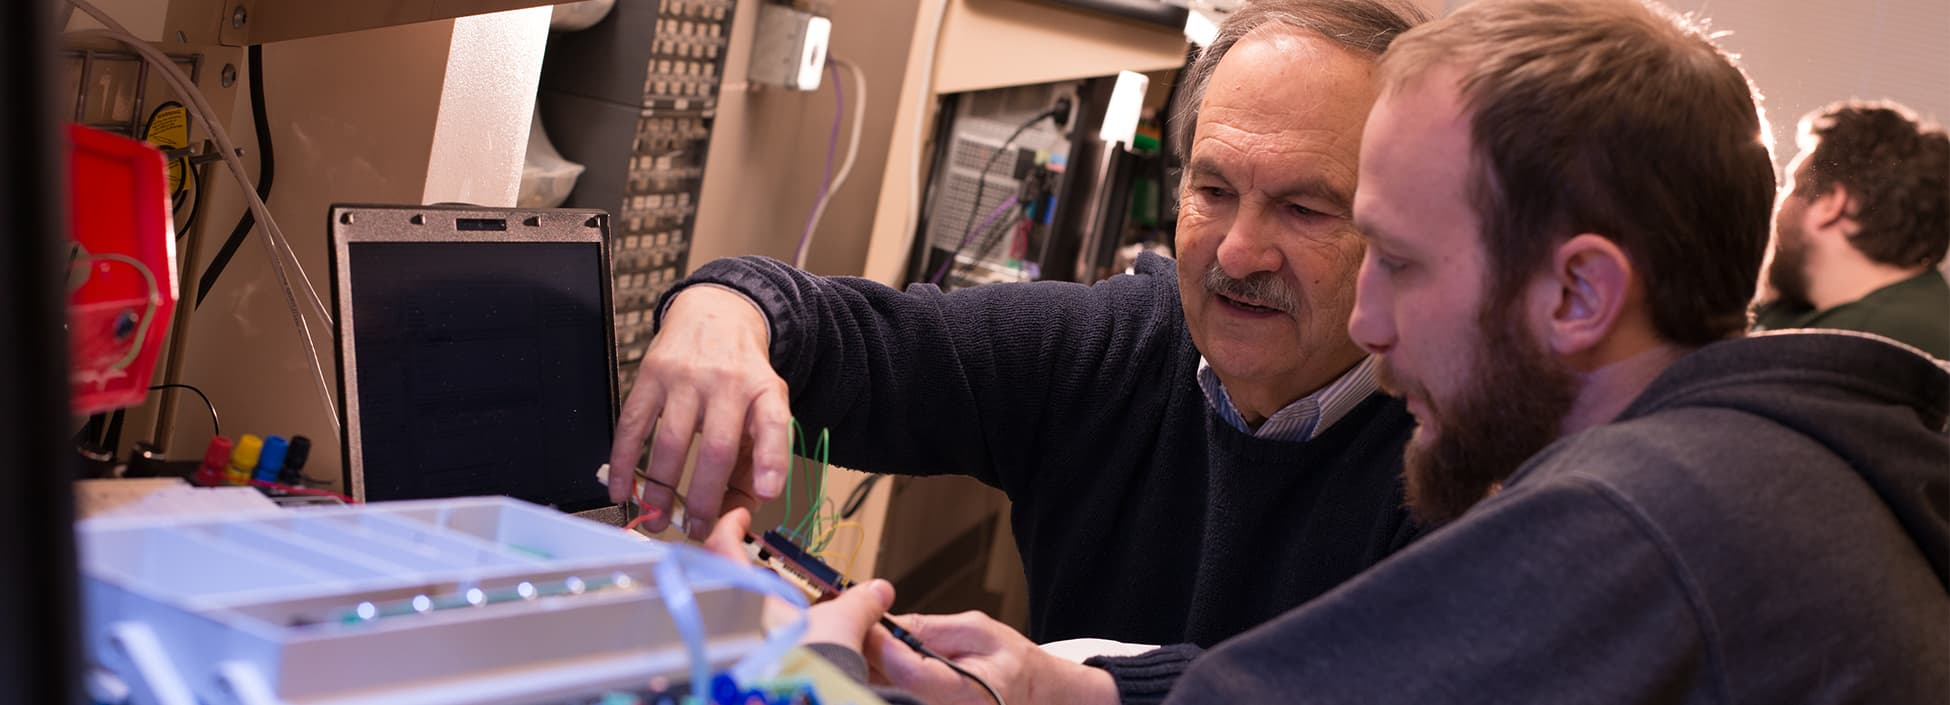 A professor works with an Electrical Engineering Technology student during lab, hands on